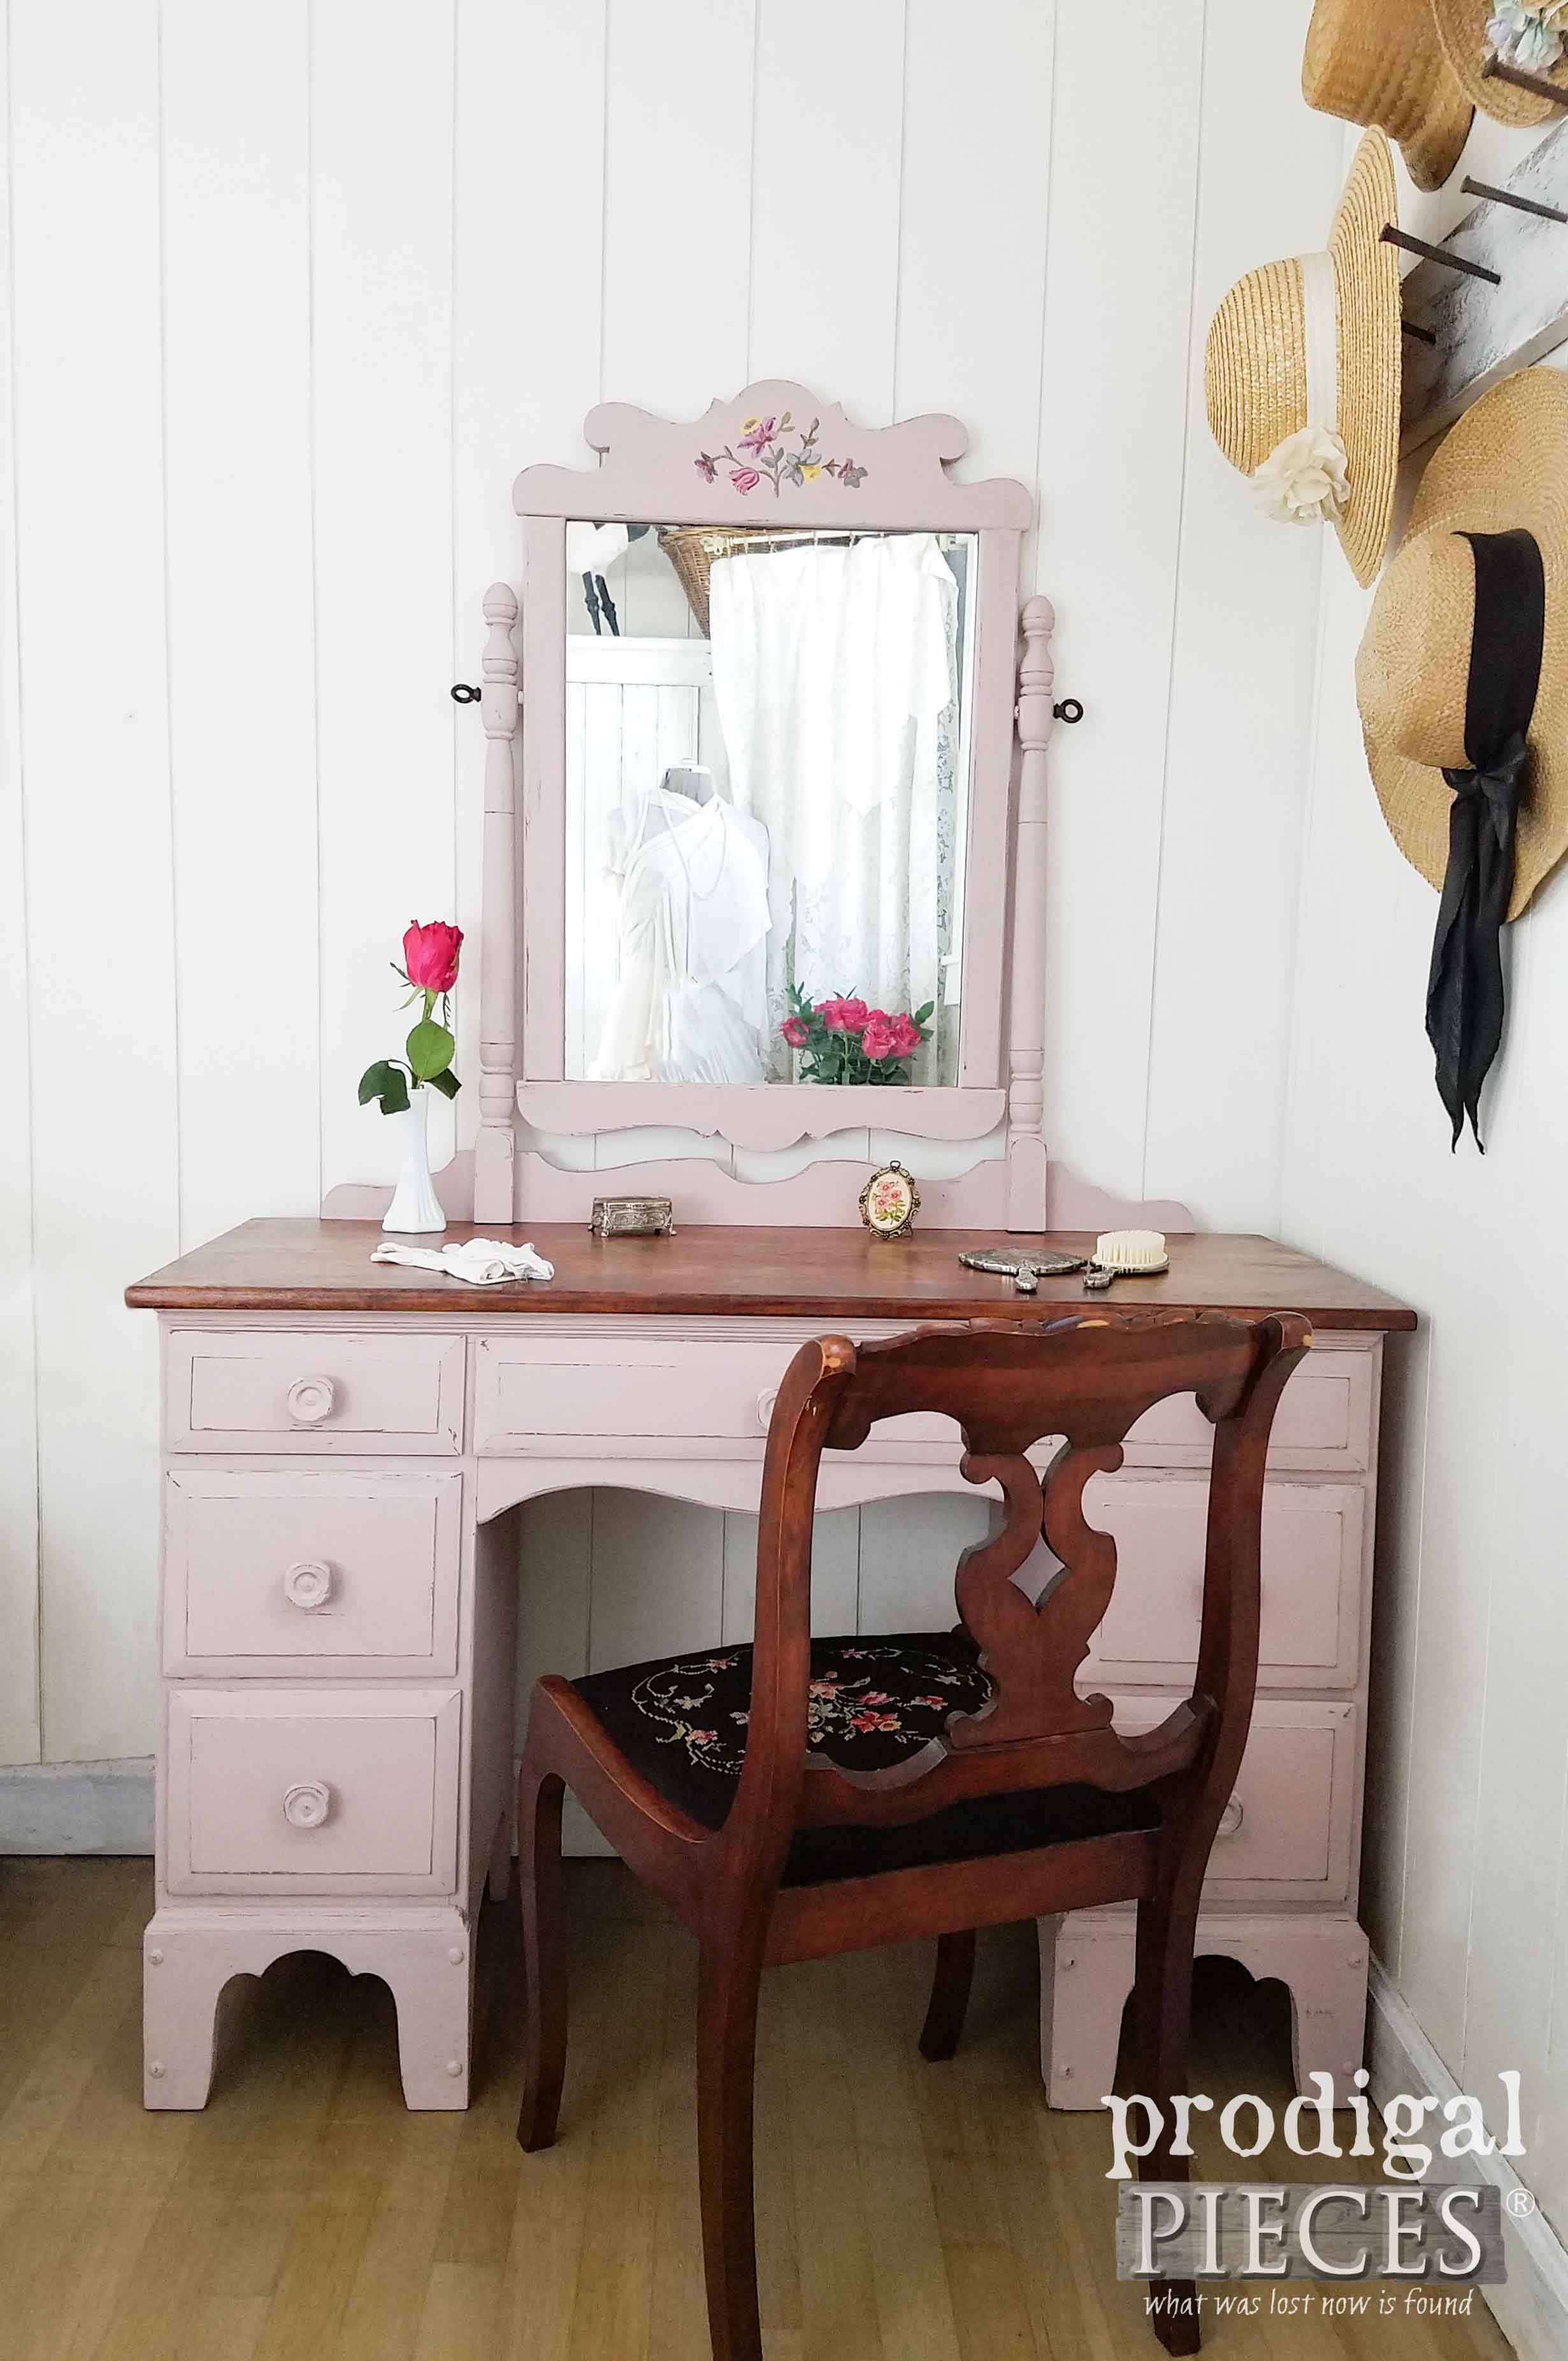 Simply Chic Vintage Vanity Painted Tea Rose Pink by Prodigal Pieces | prodigalpieces.com